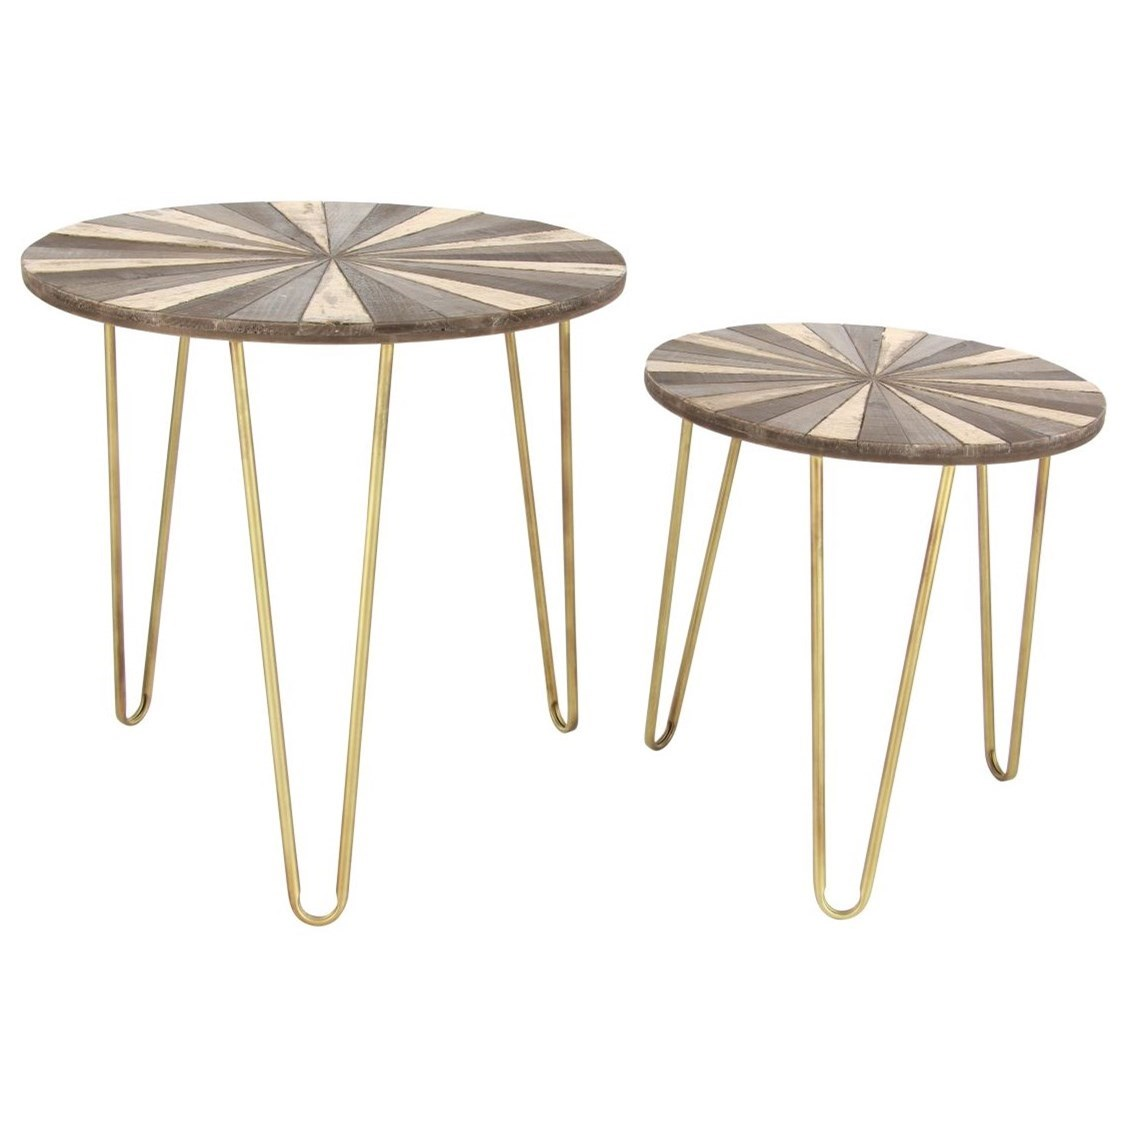 Metal/Wood Accent Tables, Set of 2